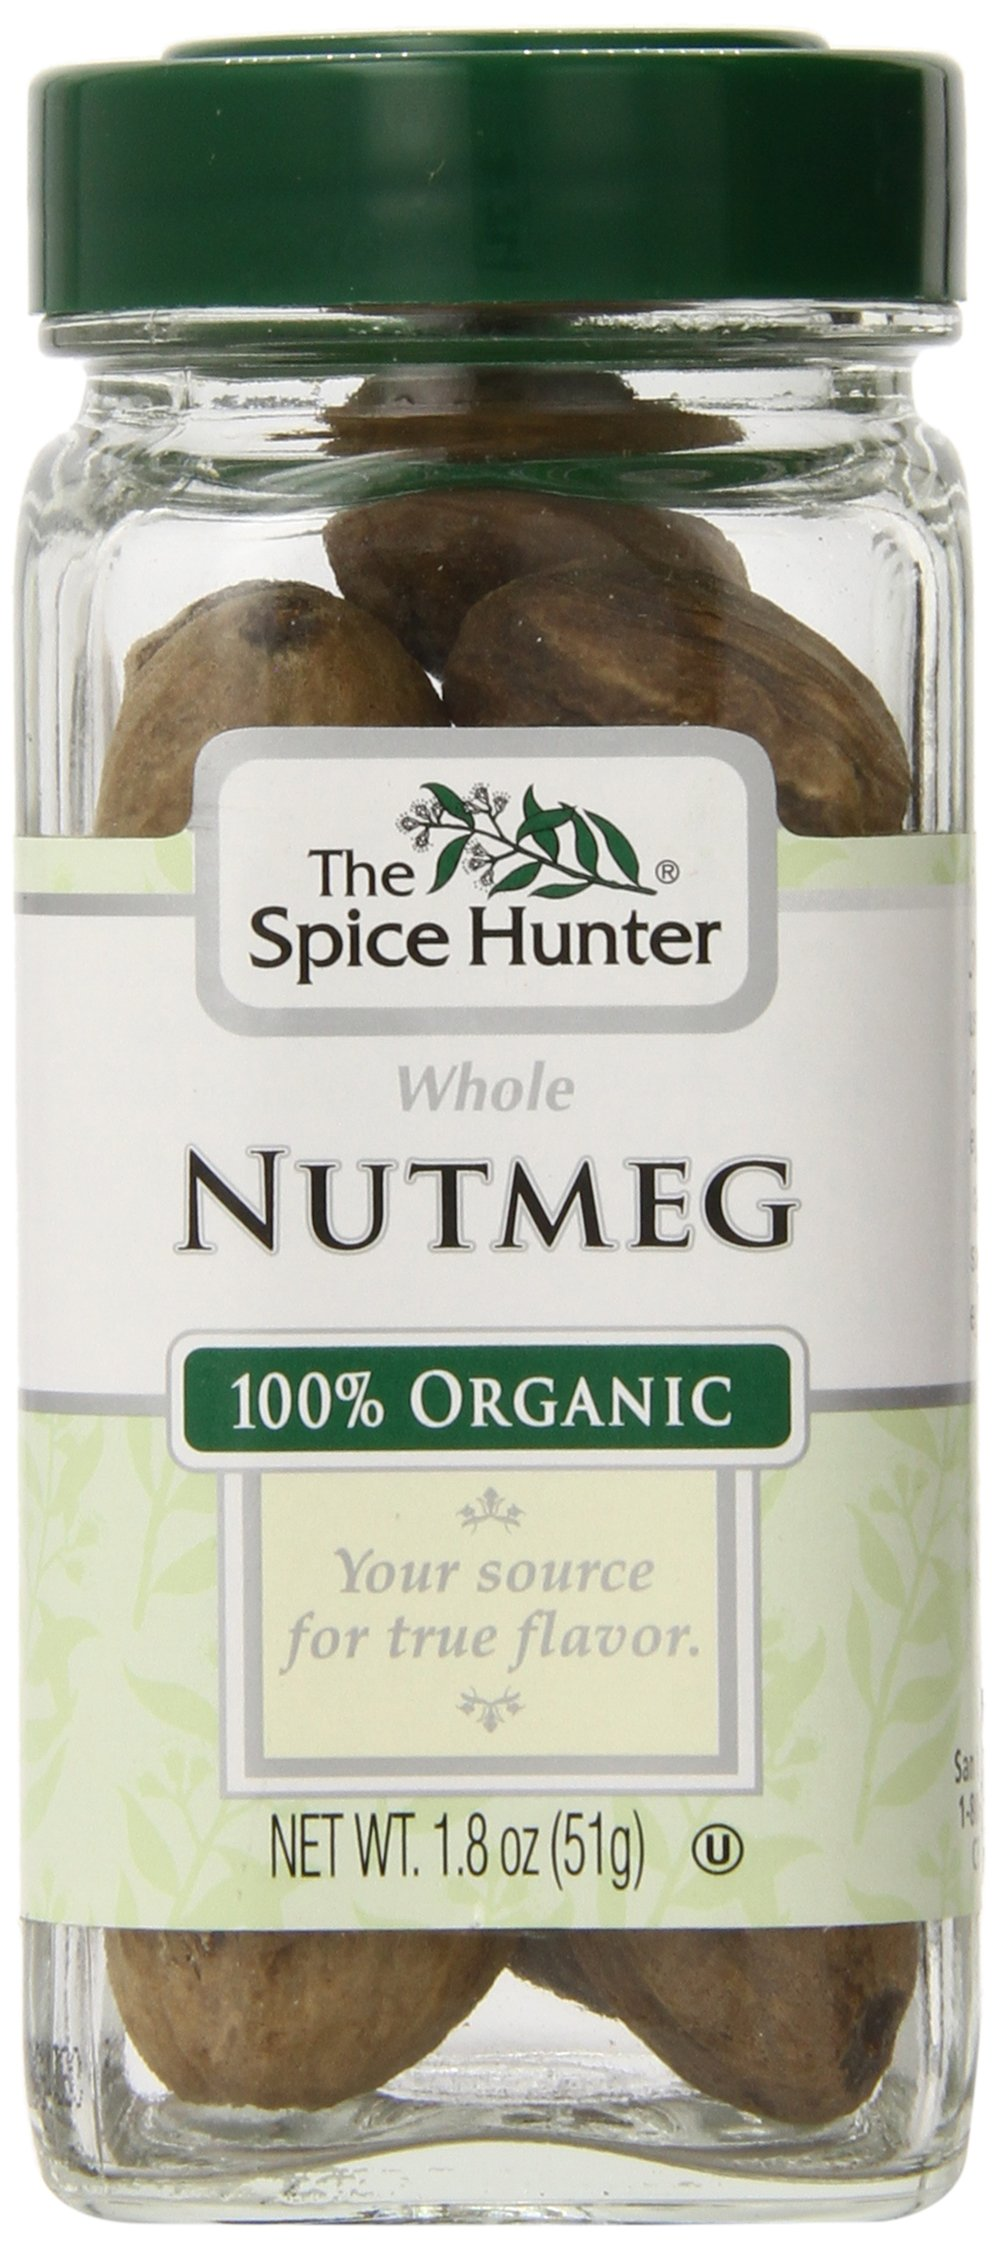 The Spice Hunter Organic Nutmeg, Whole, 1.8 oz. jar by Spice Hunter (Image #1)